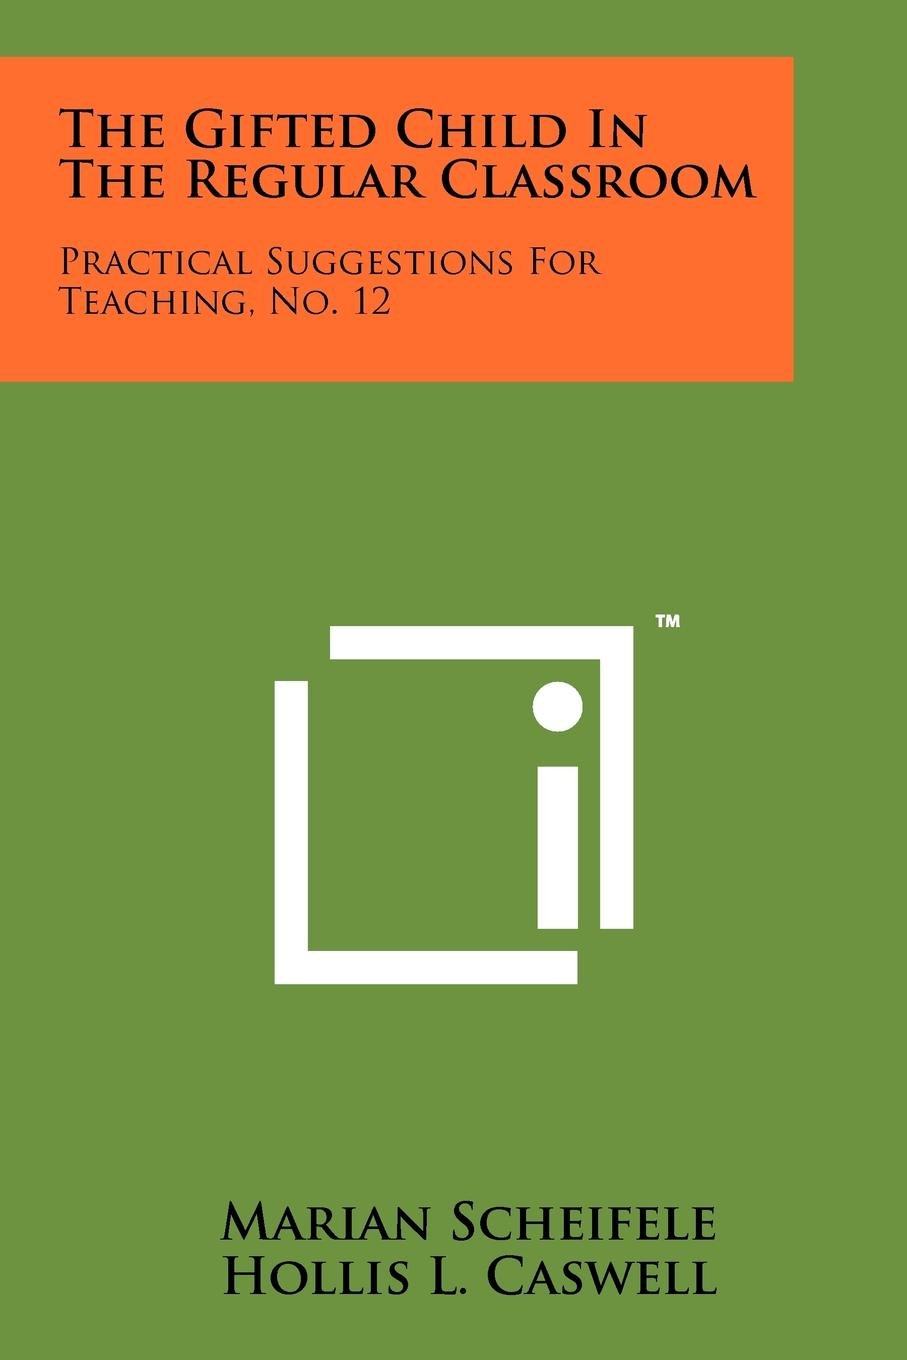 The Gifted Child In The Regular Classroom: Practical Suggestions For Teaching, No. 12 pdf